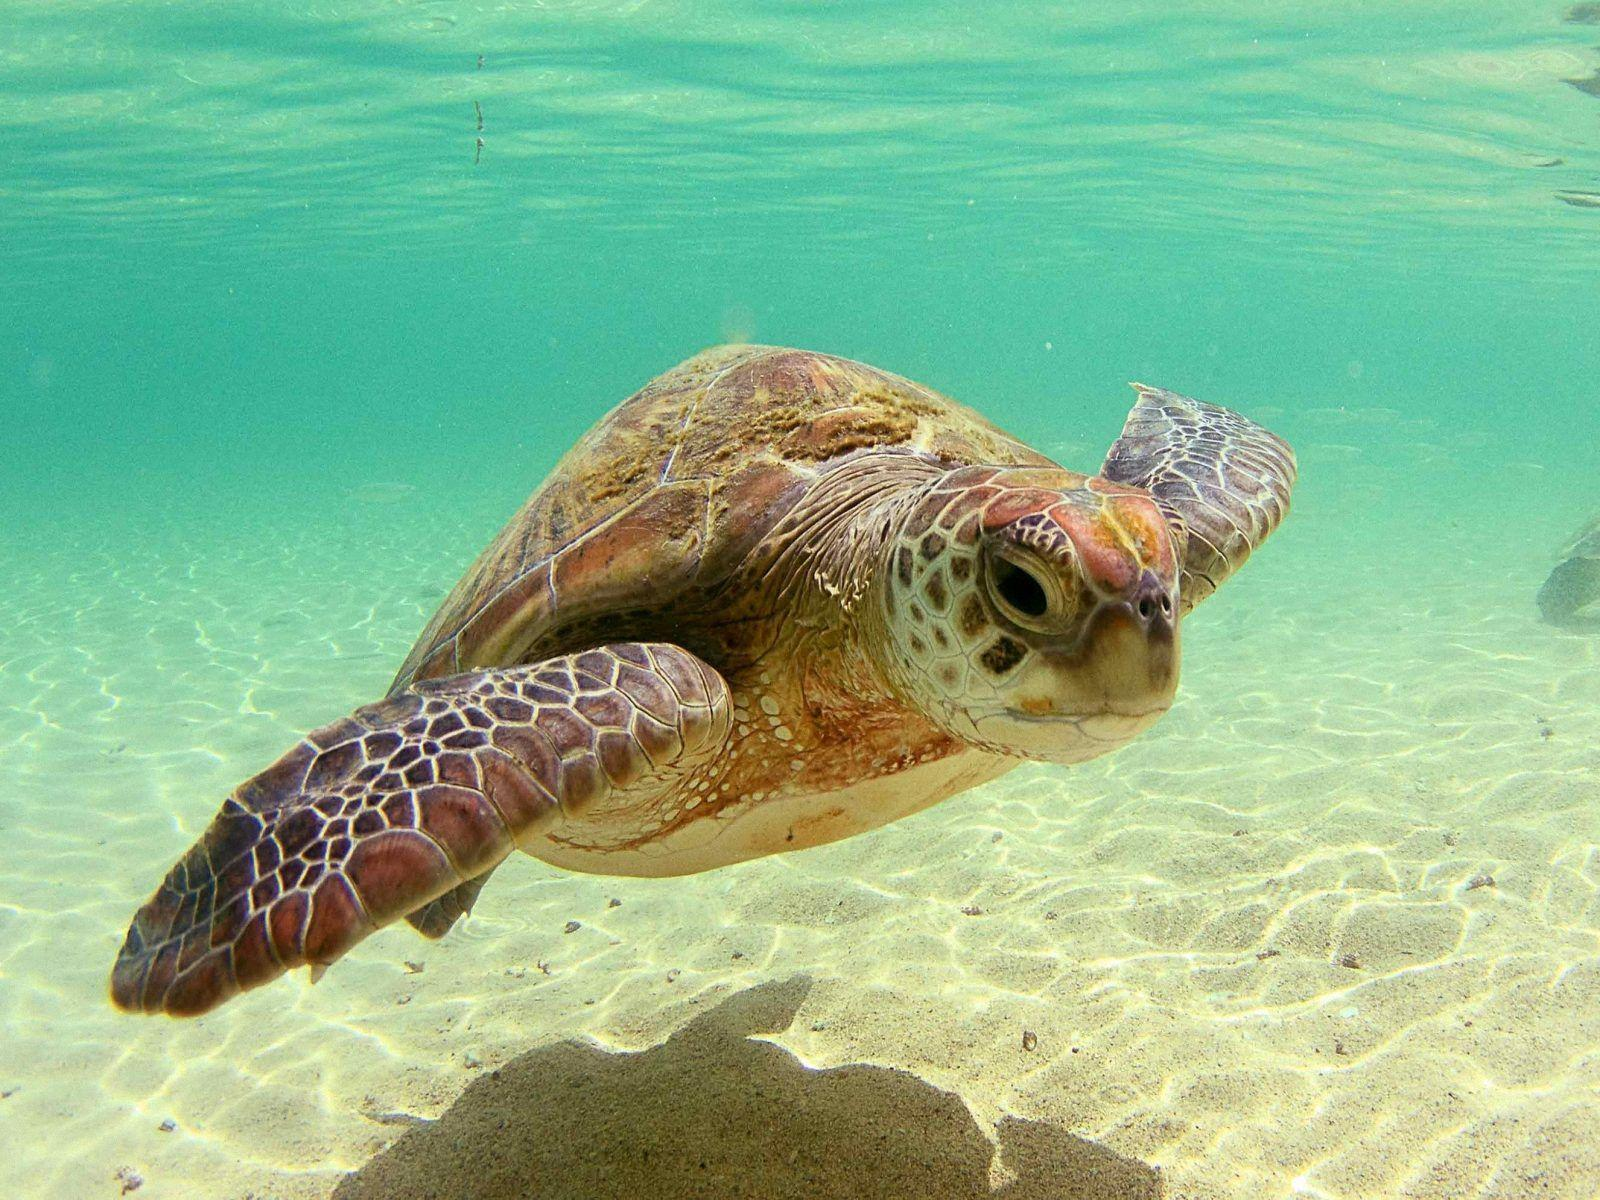 Download Sea Turtle Wallpapers 11274 1600x1200 px High Resolution